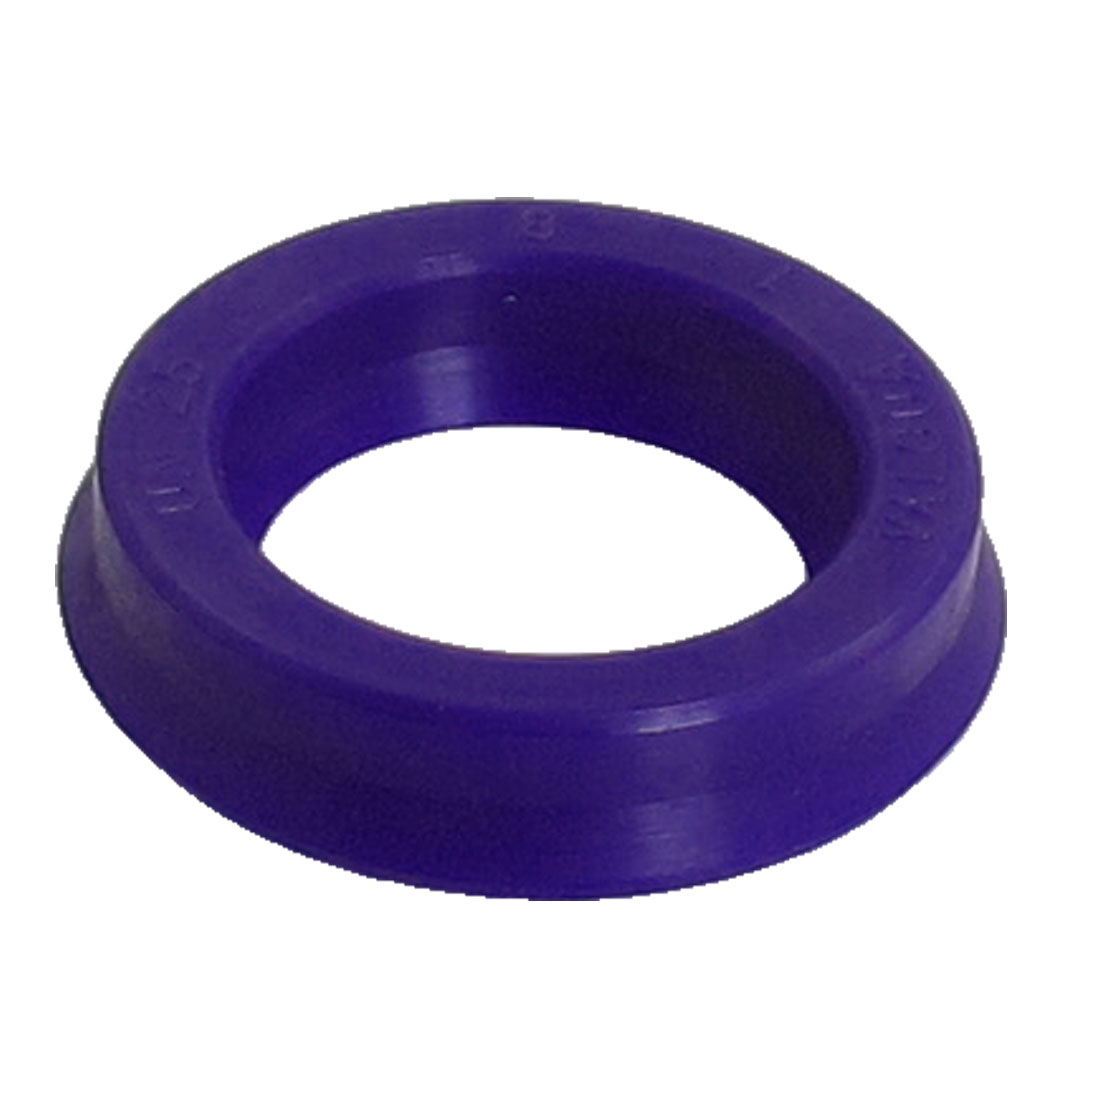 Blue PU 25mm x 35mm x 8mm Double Lip Sealing Cushion Dust Seal Ring